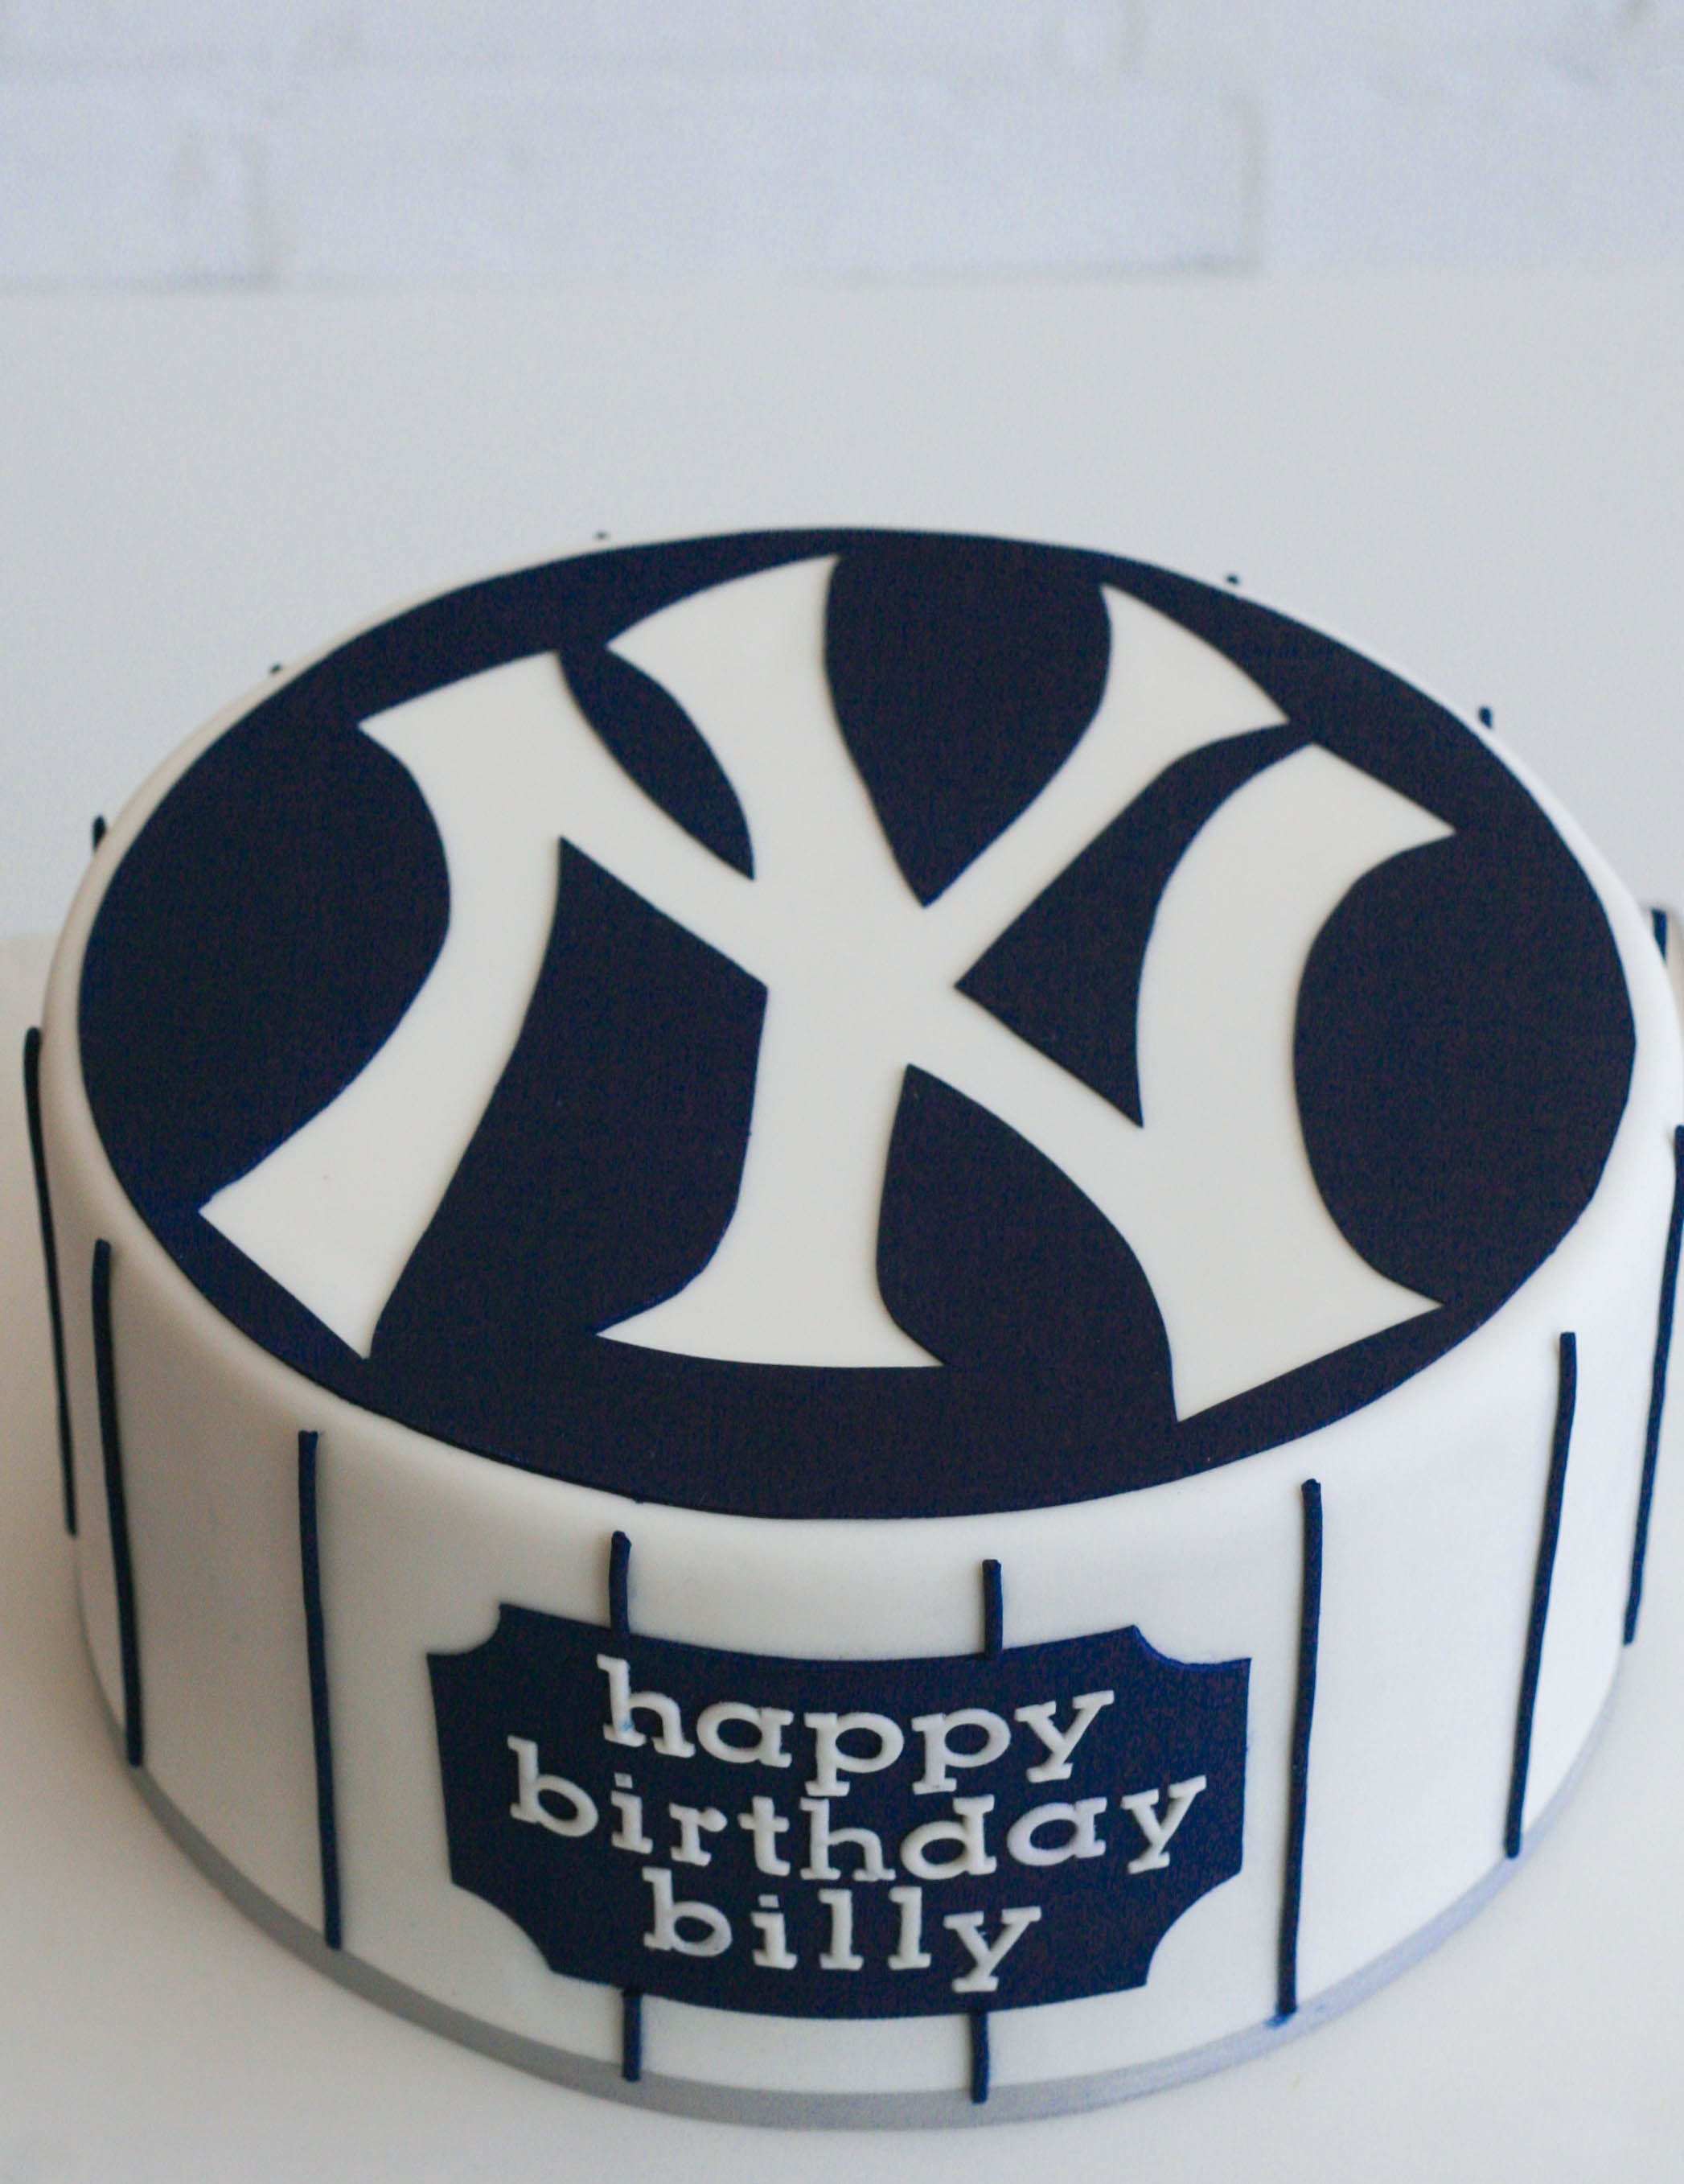 New york yankees birthday cake cakecentral new york yankees logo hand cut in the negative out of blue circle rather than being appliqued on fmm tappits alphabet letters used biocorpaavc Images